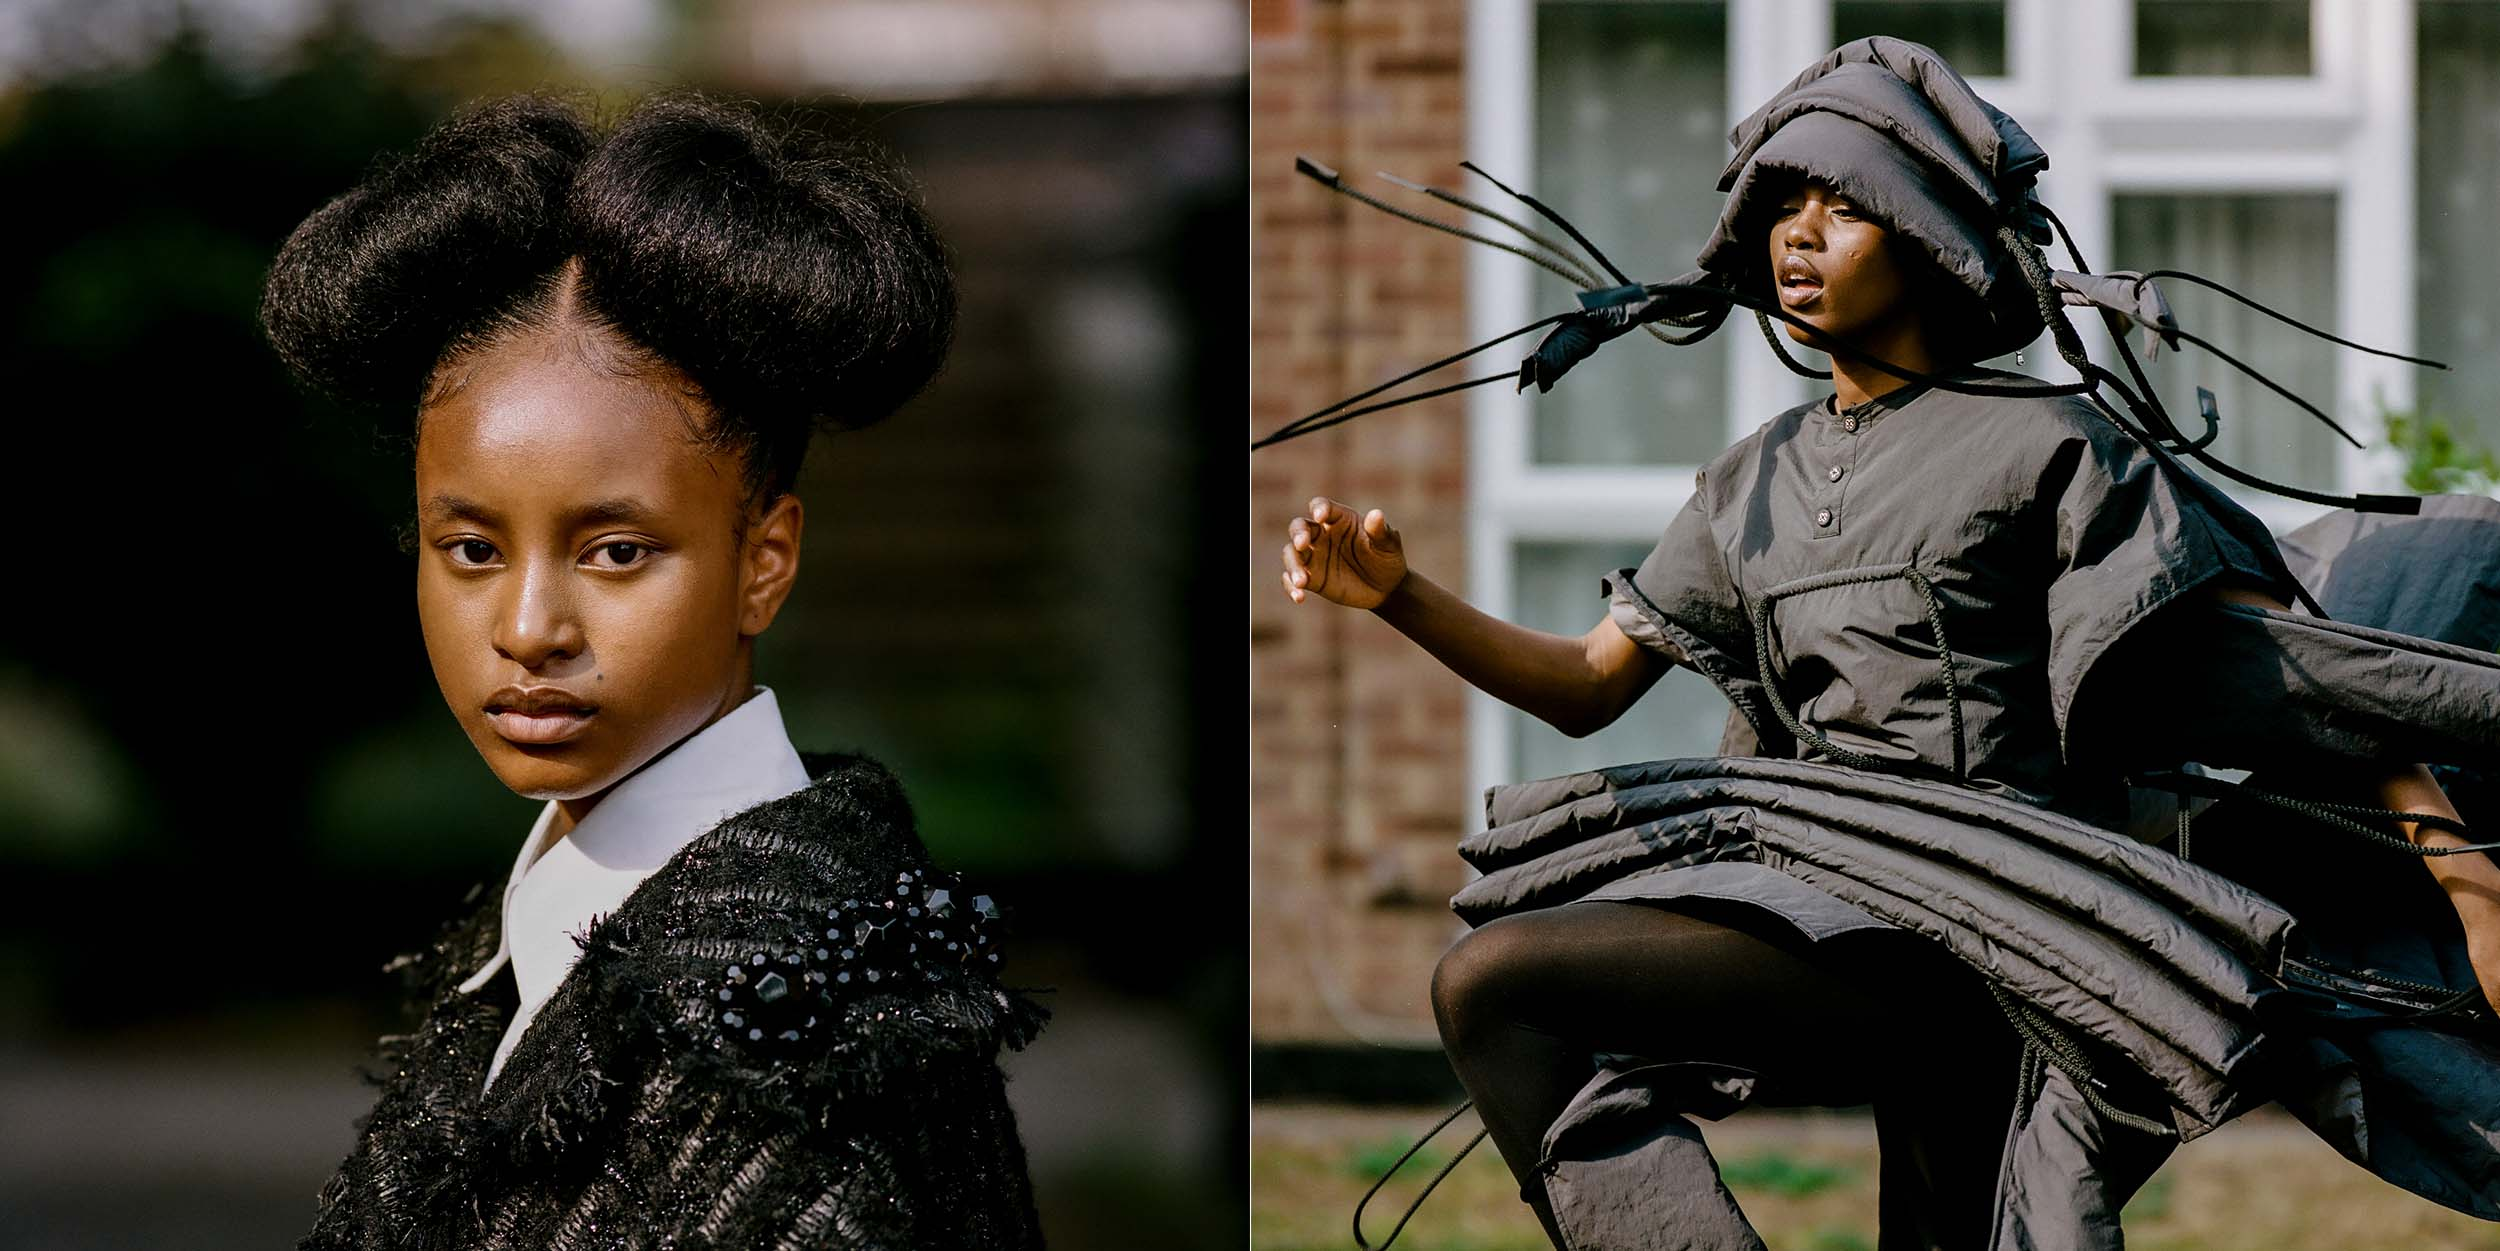 Justin Akomiah's photographic study of poise in East London